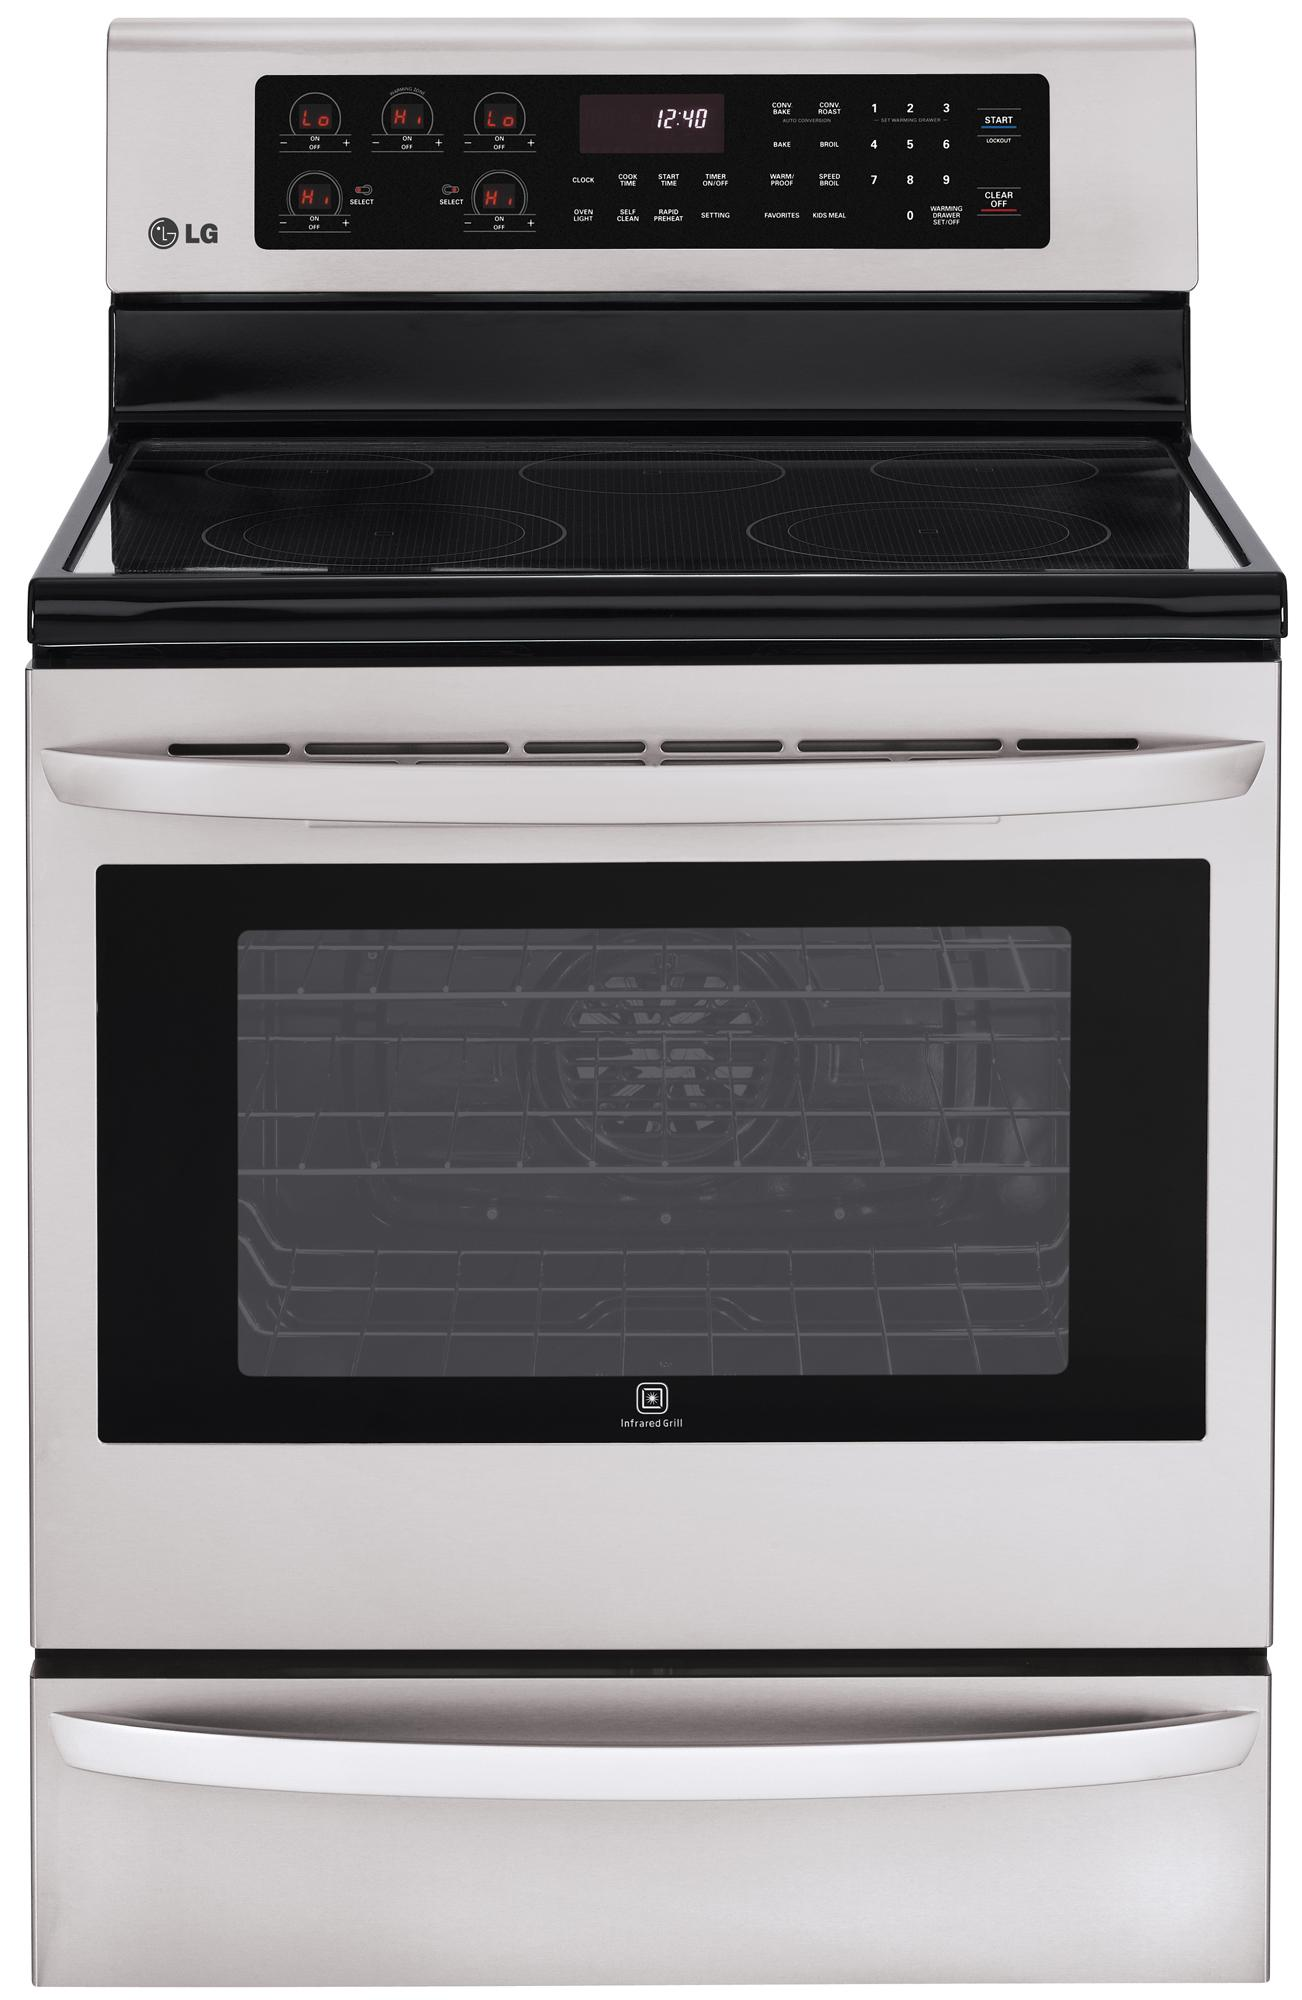 "LG Appliances Electric Ranges 30"" Freestanding Electric Range - Item Number: LRE3085ST"